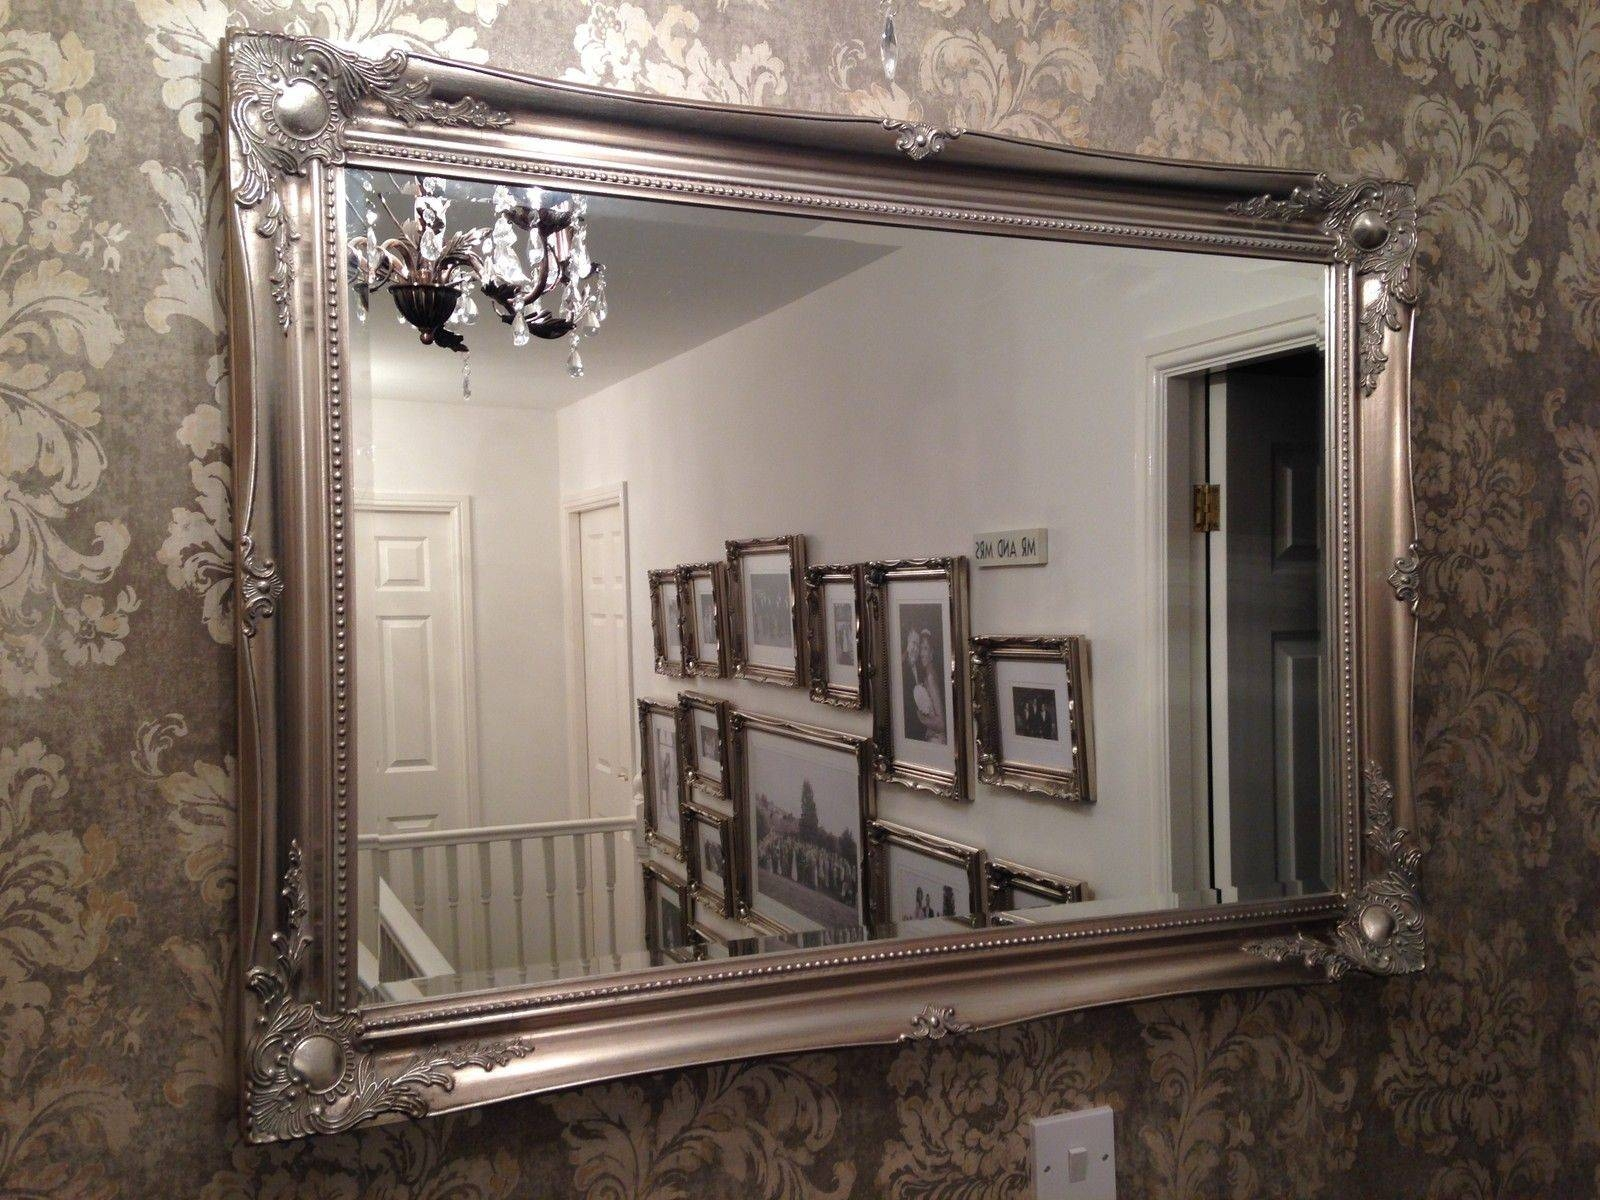 Large Antique Wall Mirror Ornate Frame Antique Ornate Wall Mirrors within Large Antiqued Mirrors (Image 16 of 25)